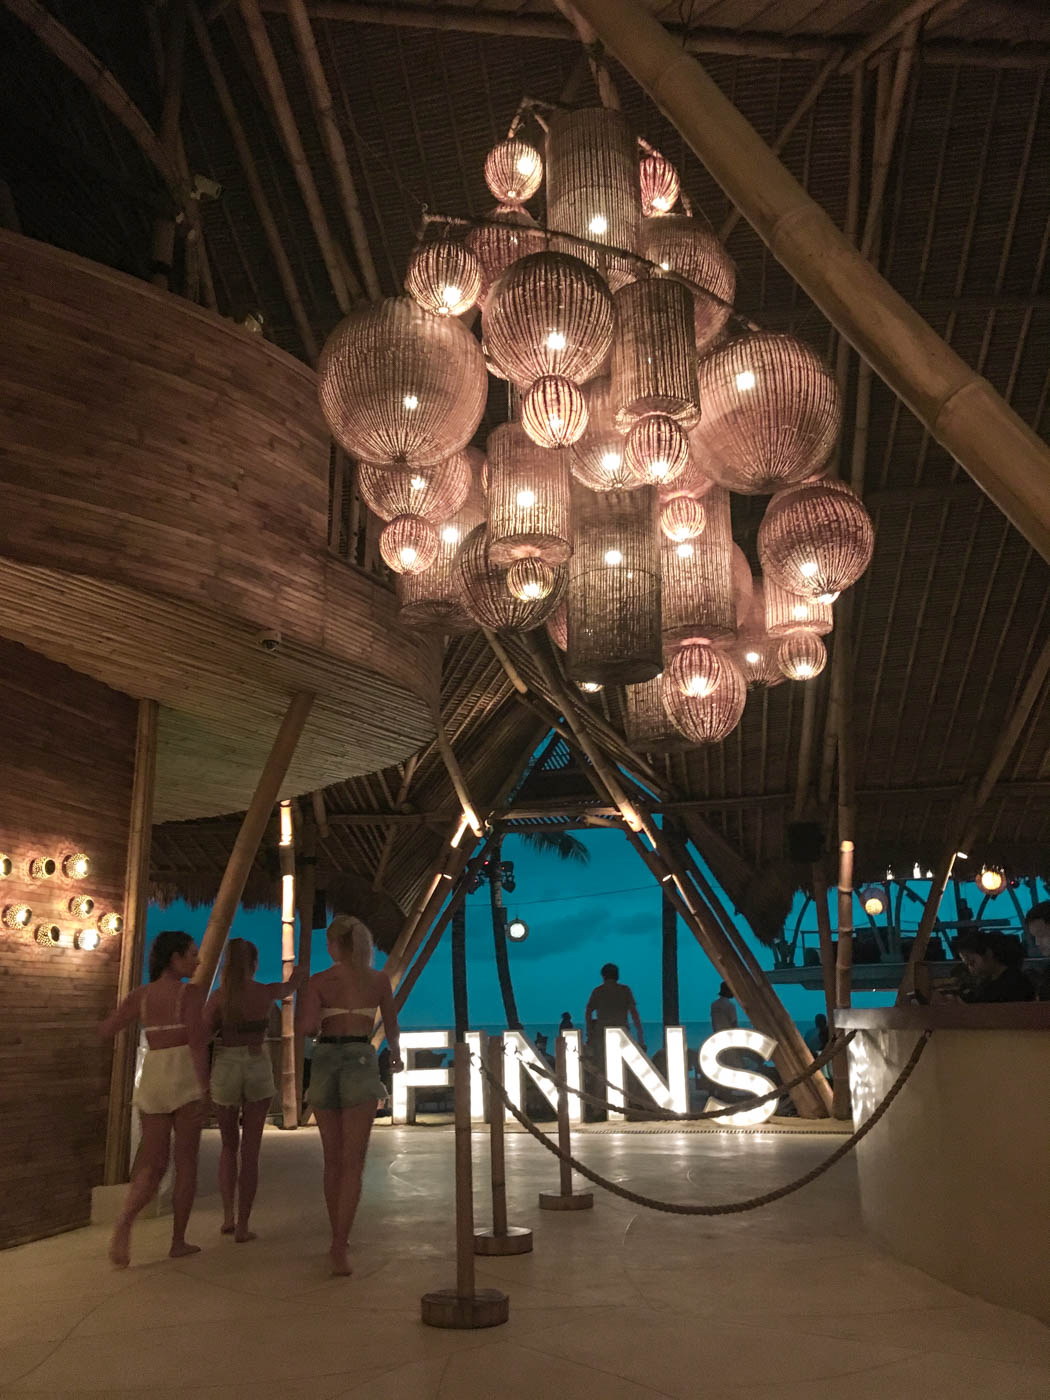 Finns Beach Club on the Batu Belig side of Canggu